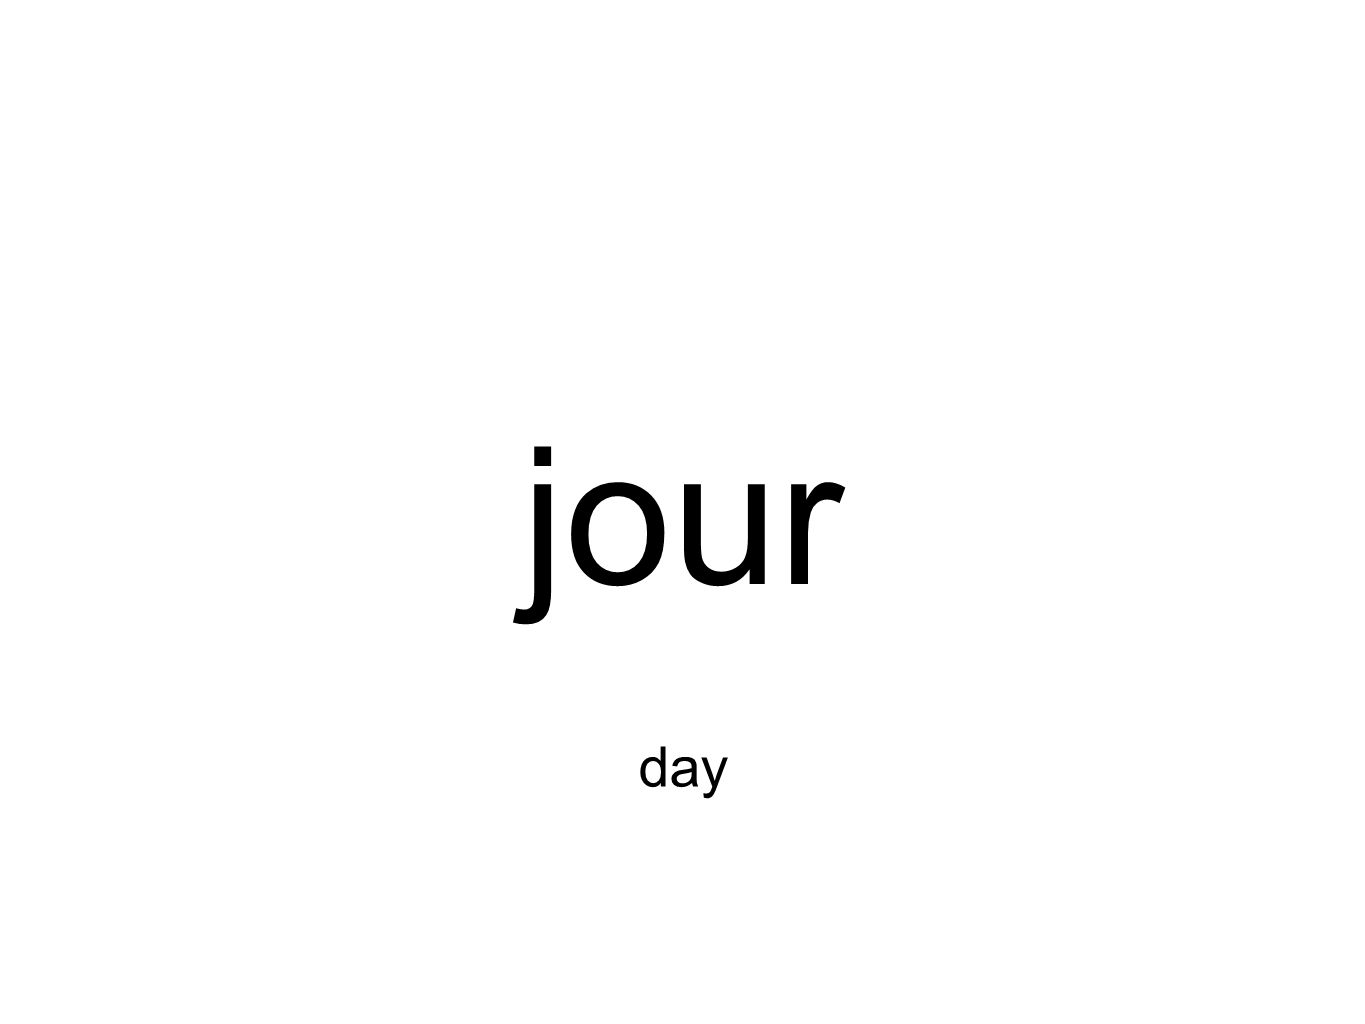 jour day